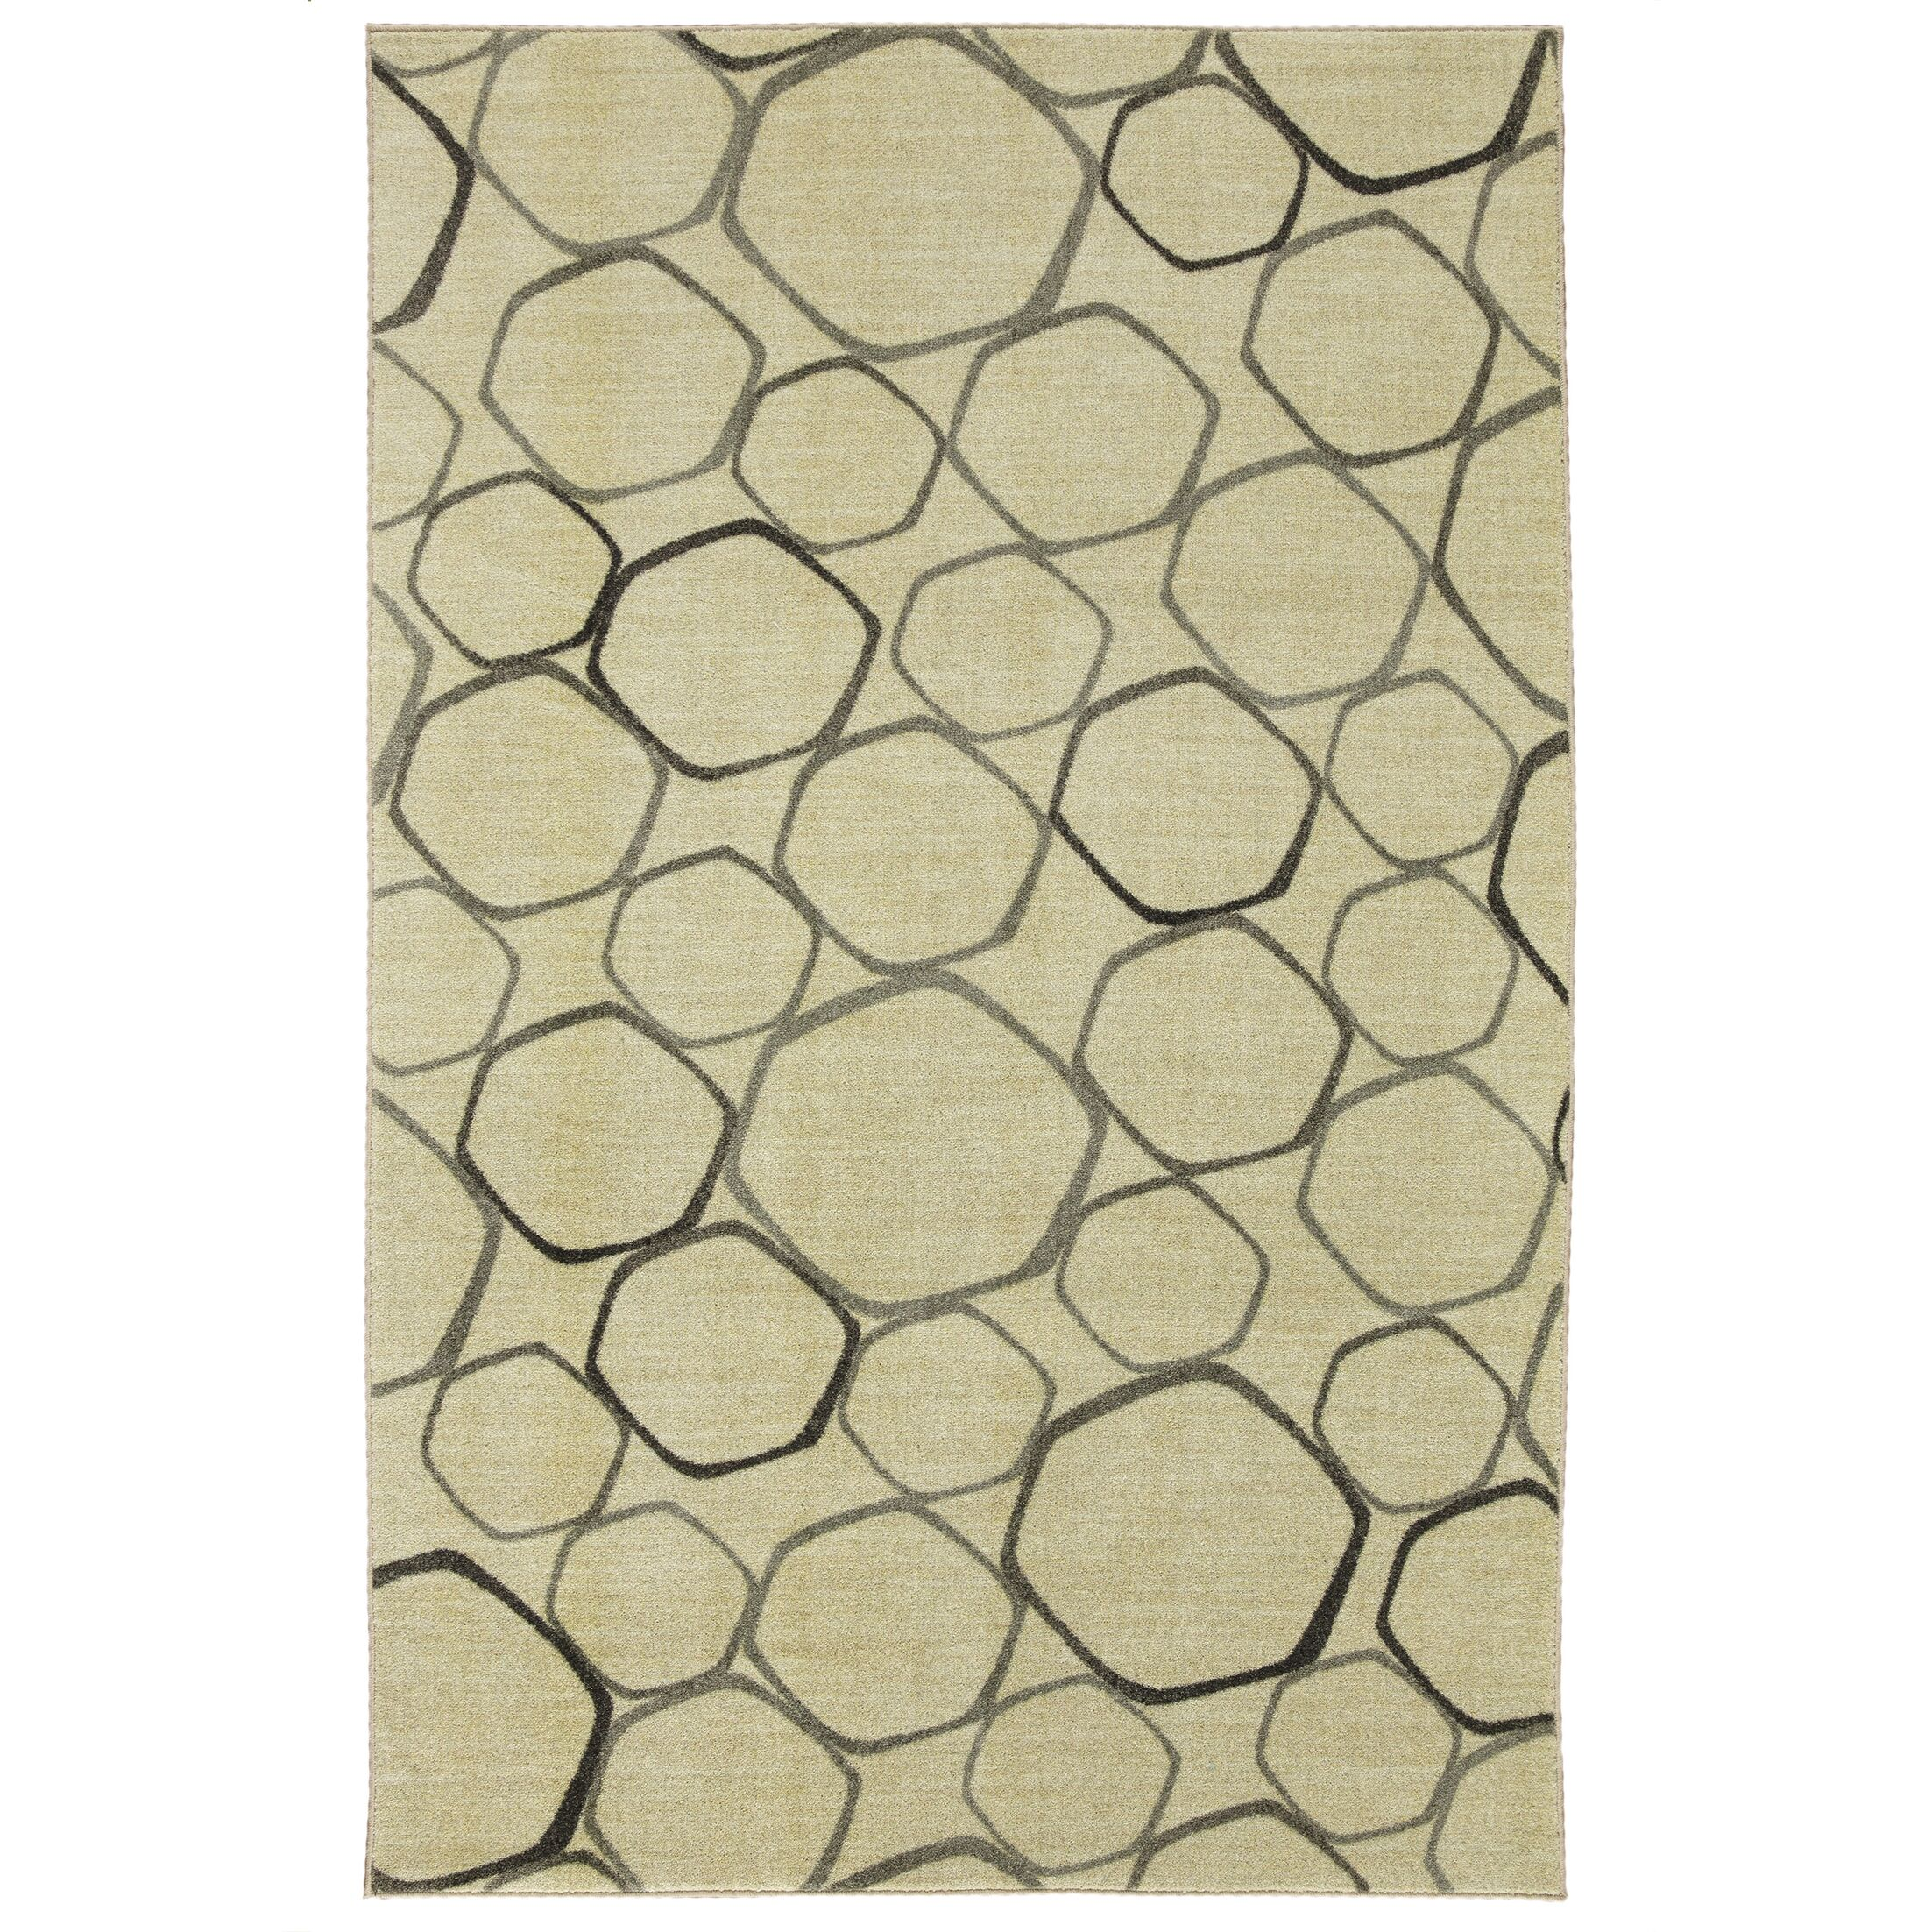 Locher Graphic Circles Gray Area Rug Rug Size: Rectangle 8' x 10'